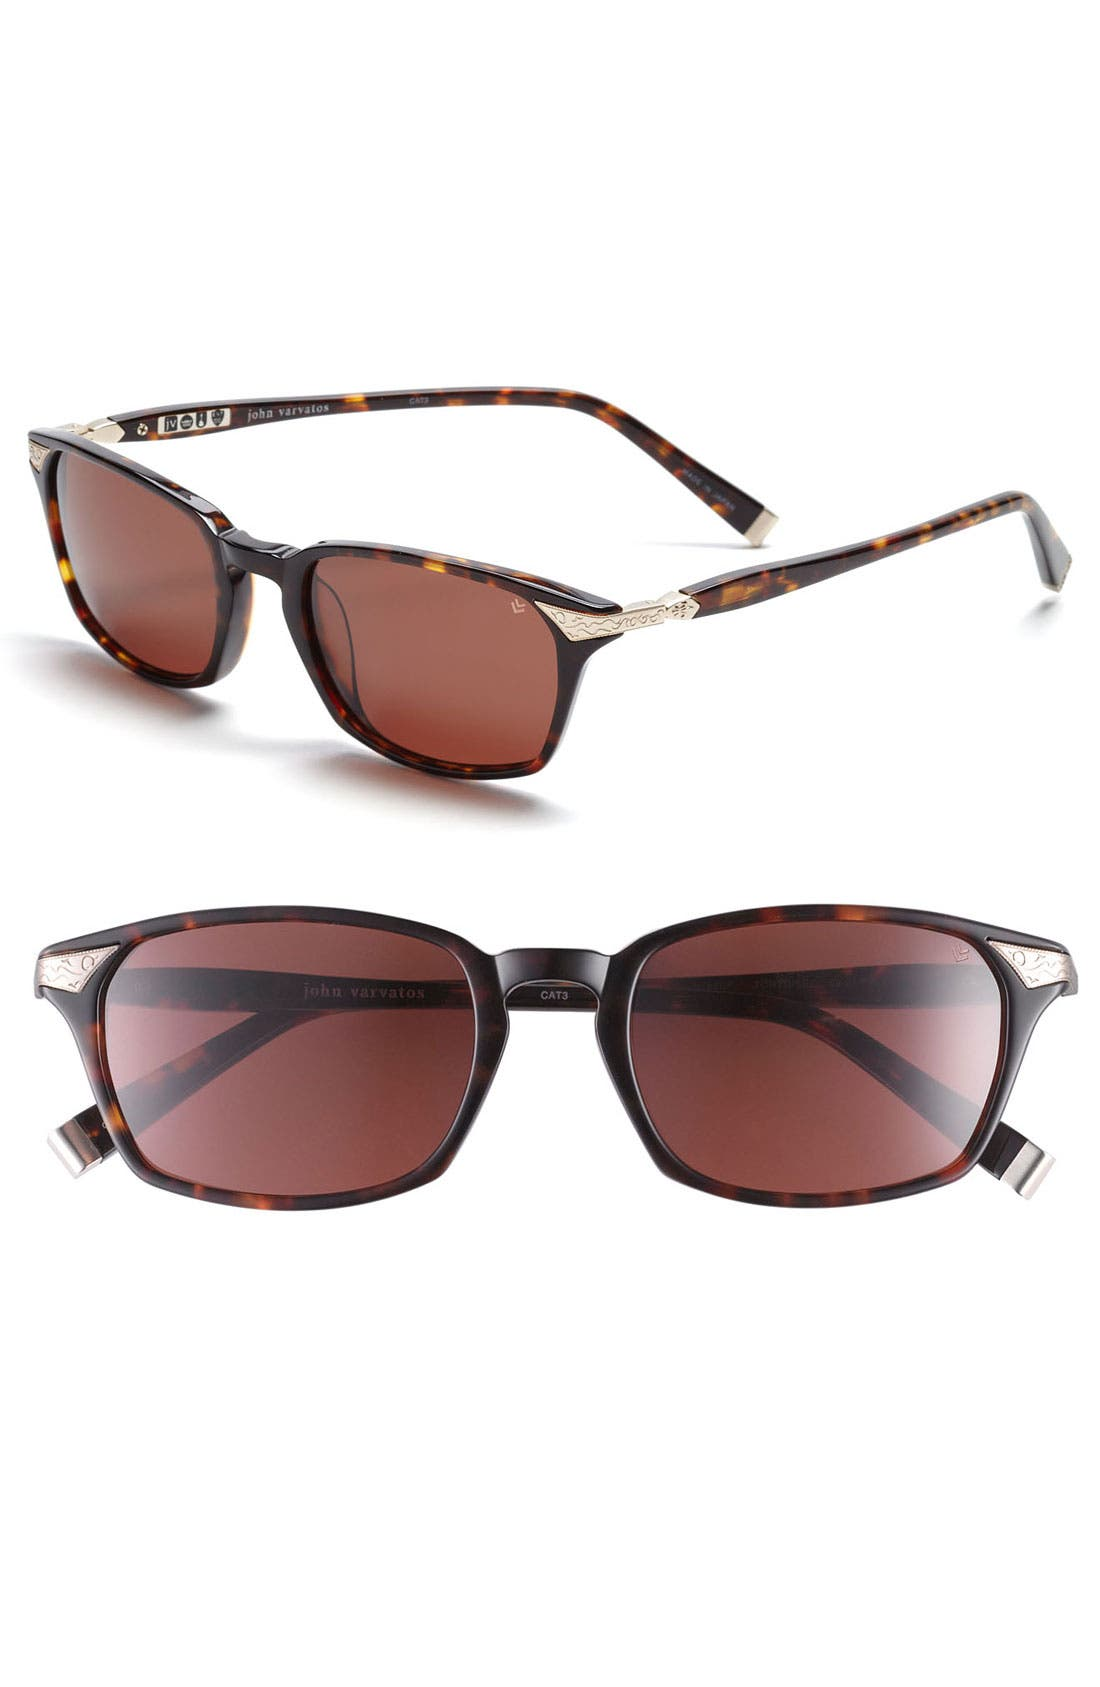 Main Image - John Varvatos Collection 53mm Sunglasses